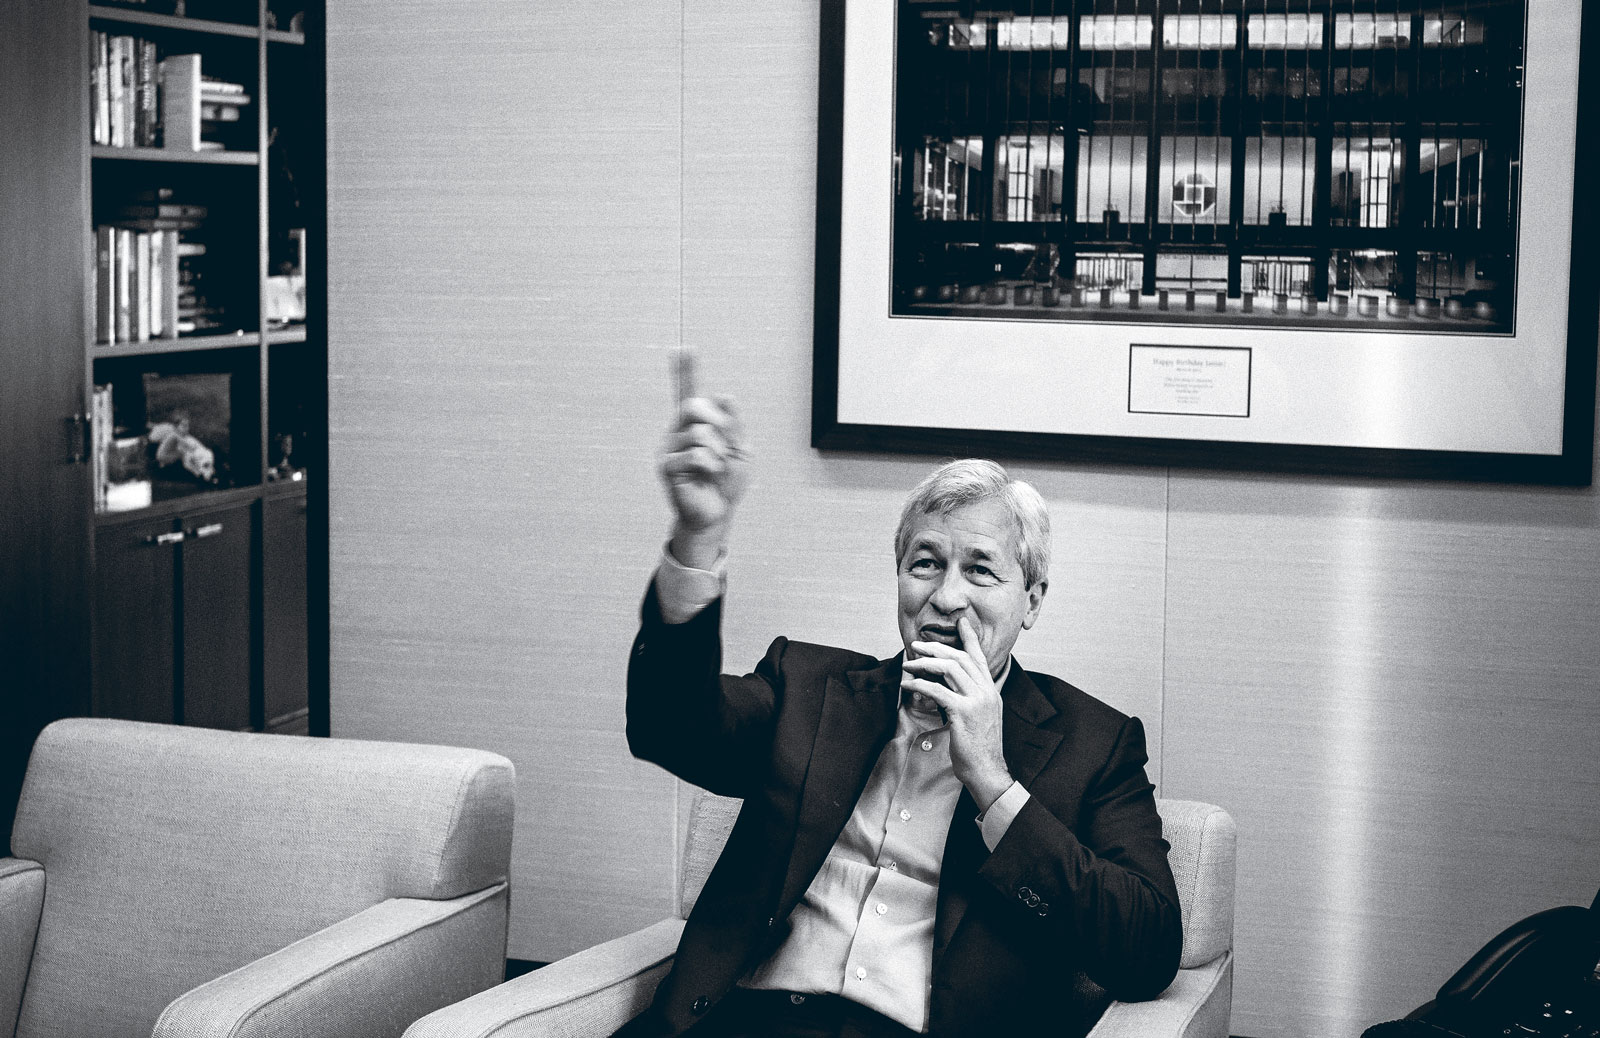 Q&A With Jamie Dimon on the Future of Finance